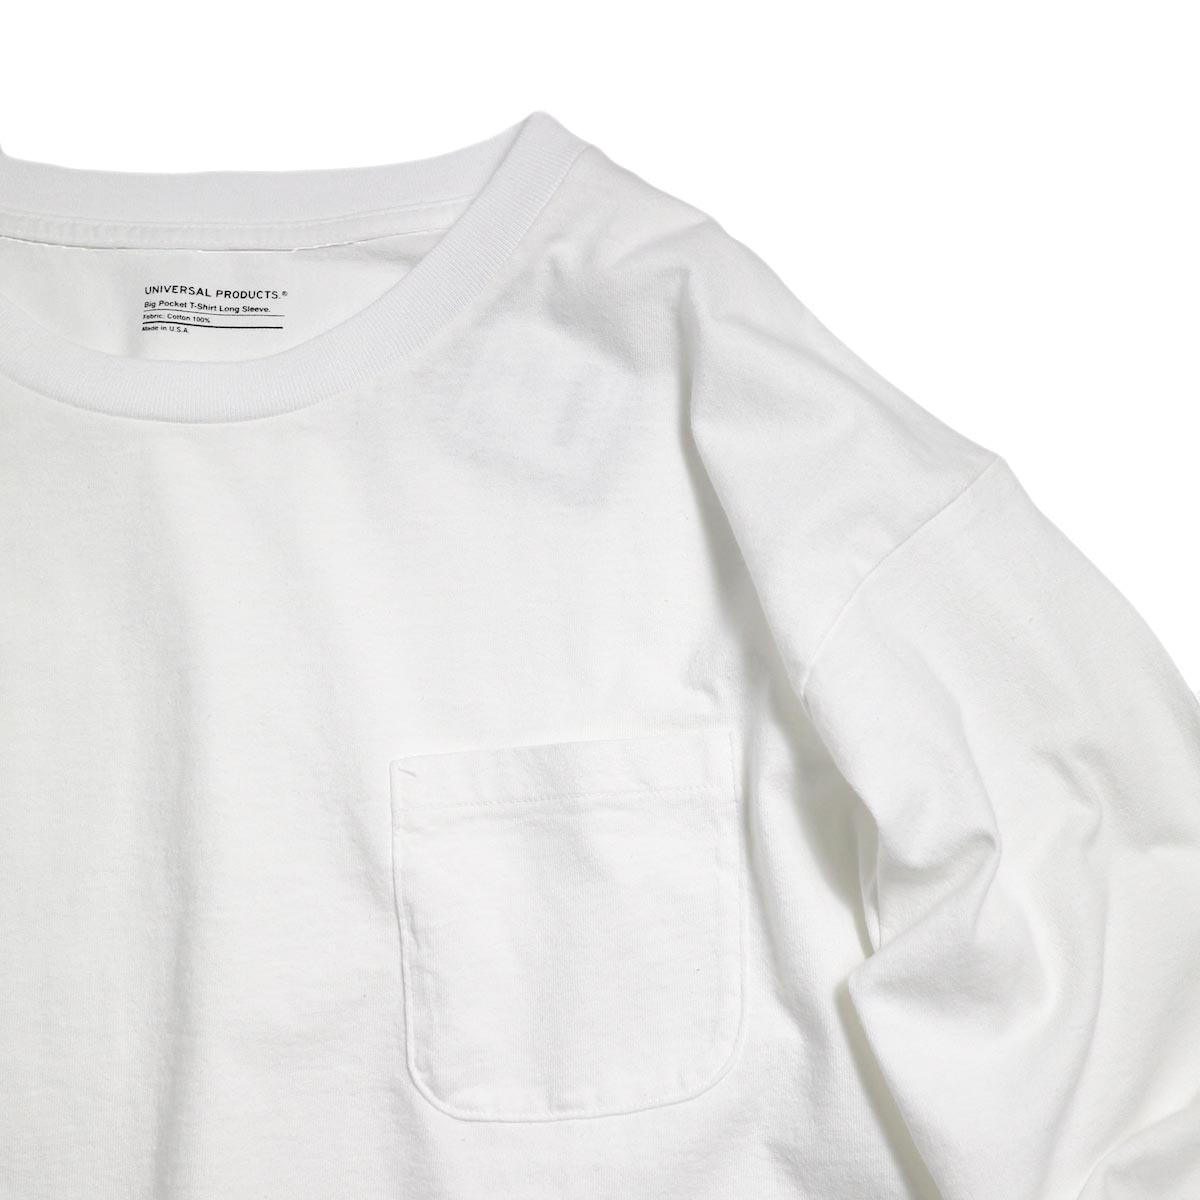 UNIVERSAL PRODUCTS / Heavy Weight L/S T-Shirt -White ポケット